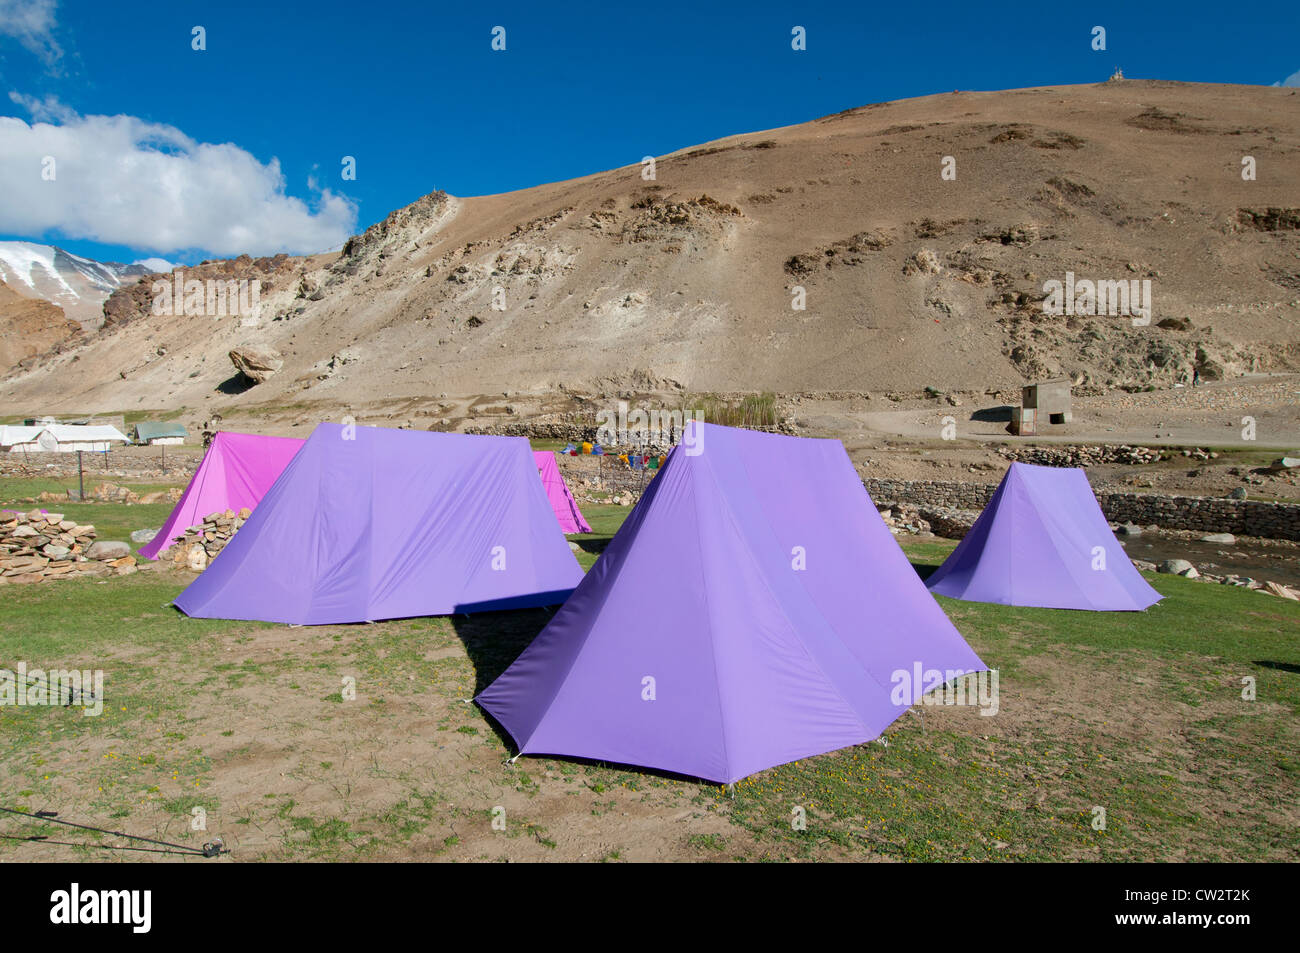 A c&site of pink and purple tents on a grassy field near Korzok village in Ladakh India & A campsite of pink and purple tents on a grassy field near Korzok ...